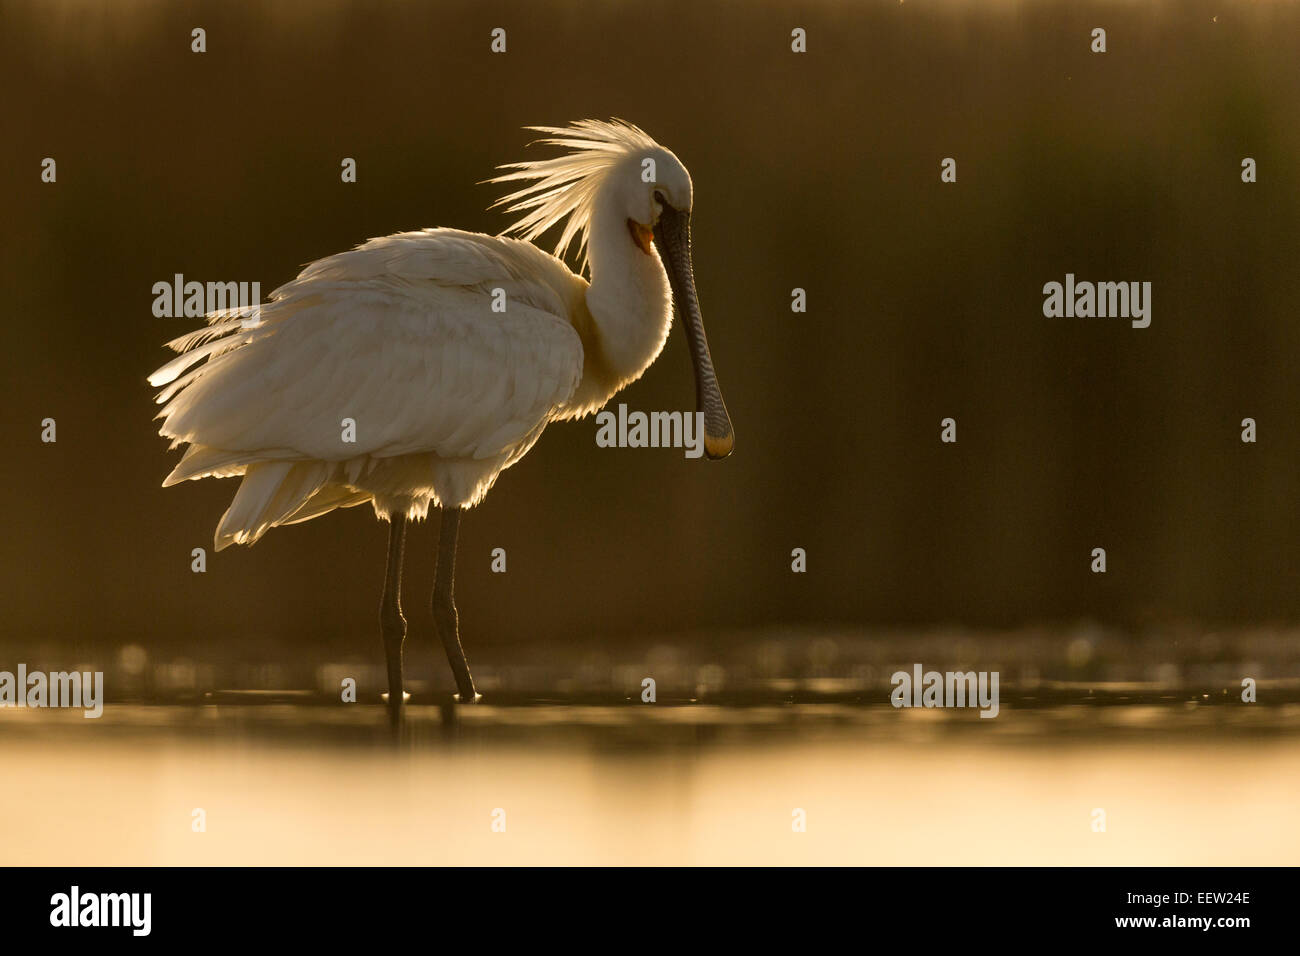 Backlit image of Eurasian Spoonbill Platalea leucorodia standing in shallow water with light shining through crest Stock Photo